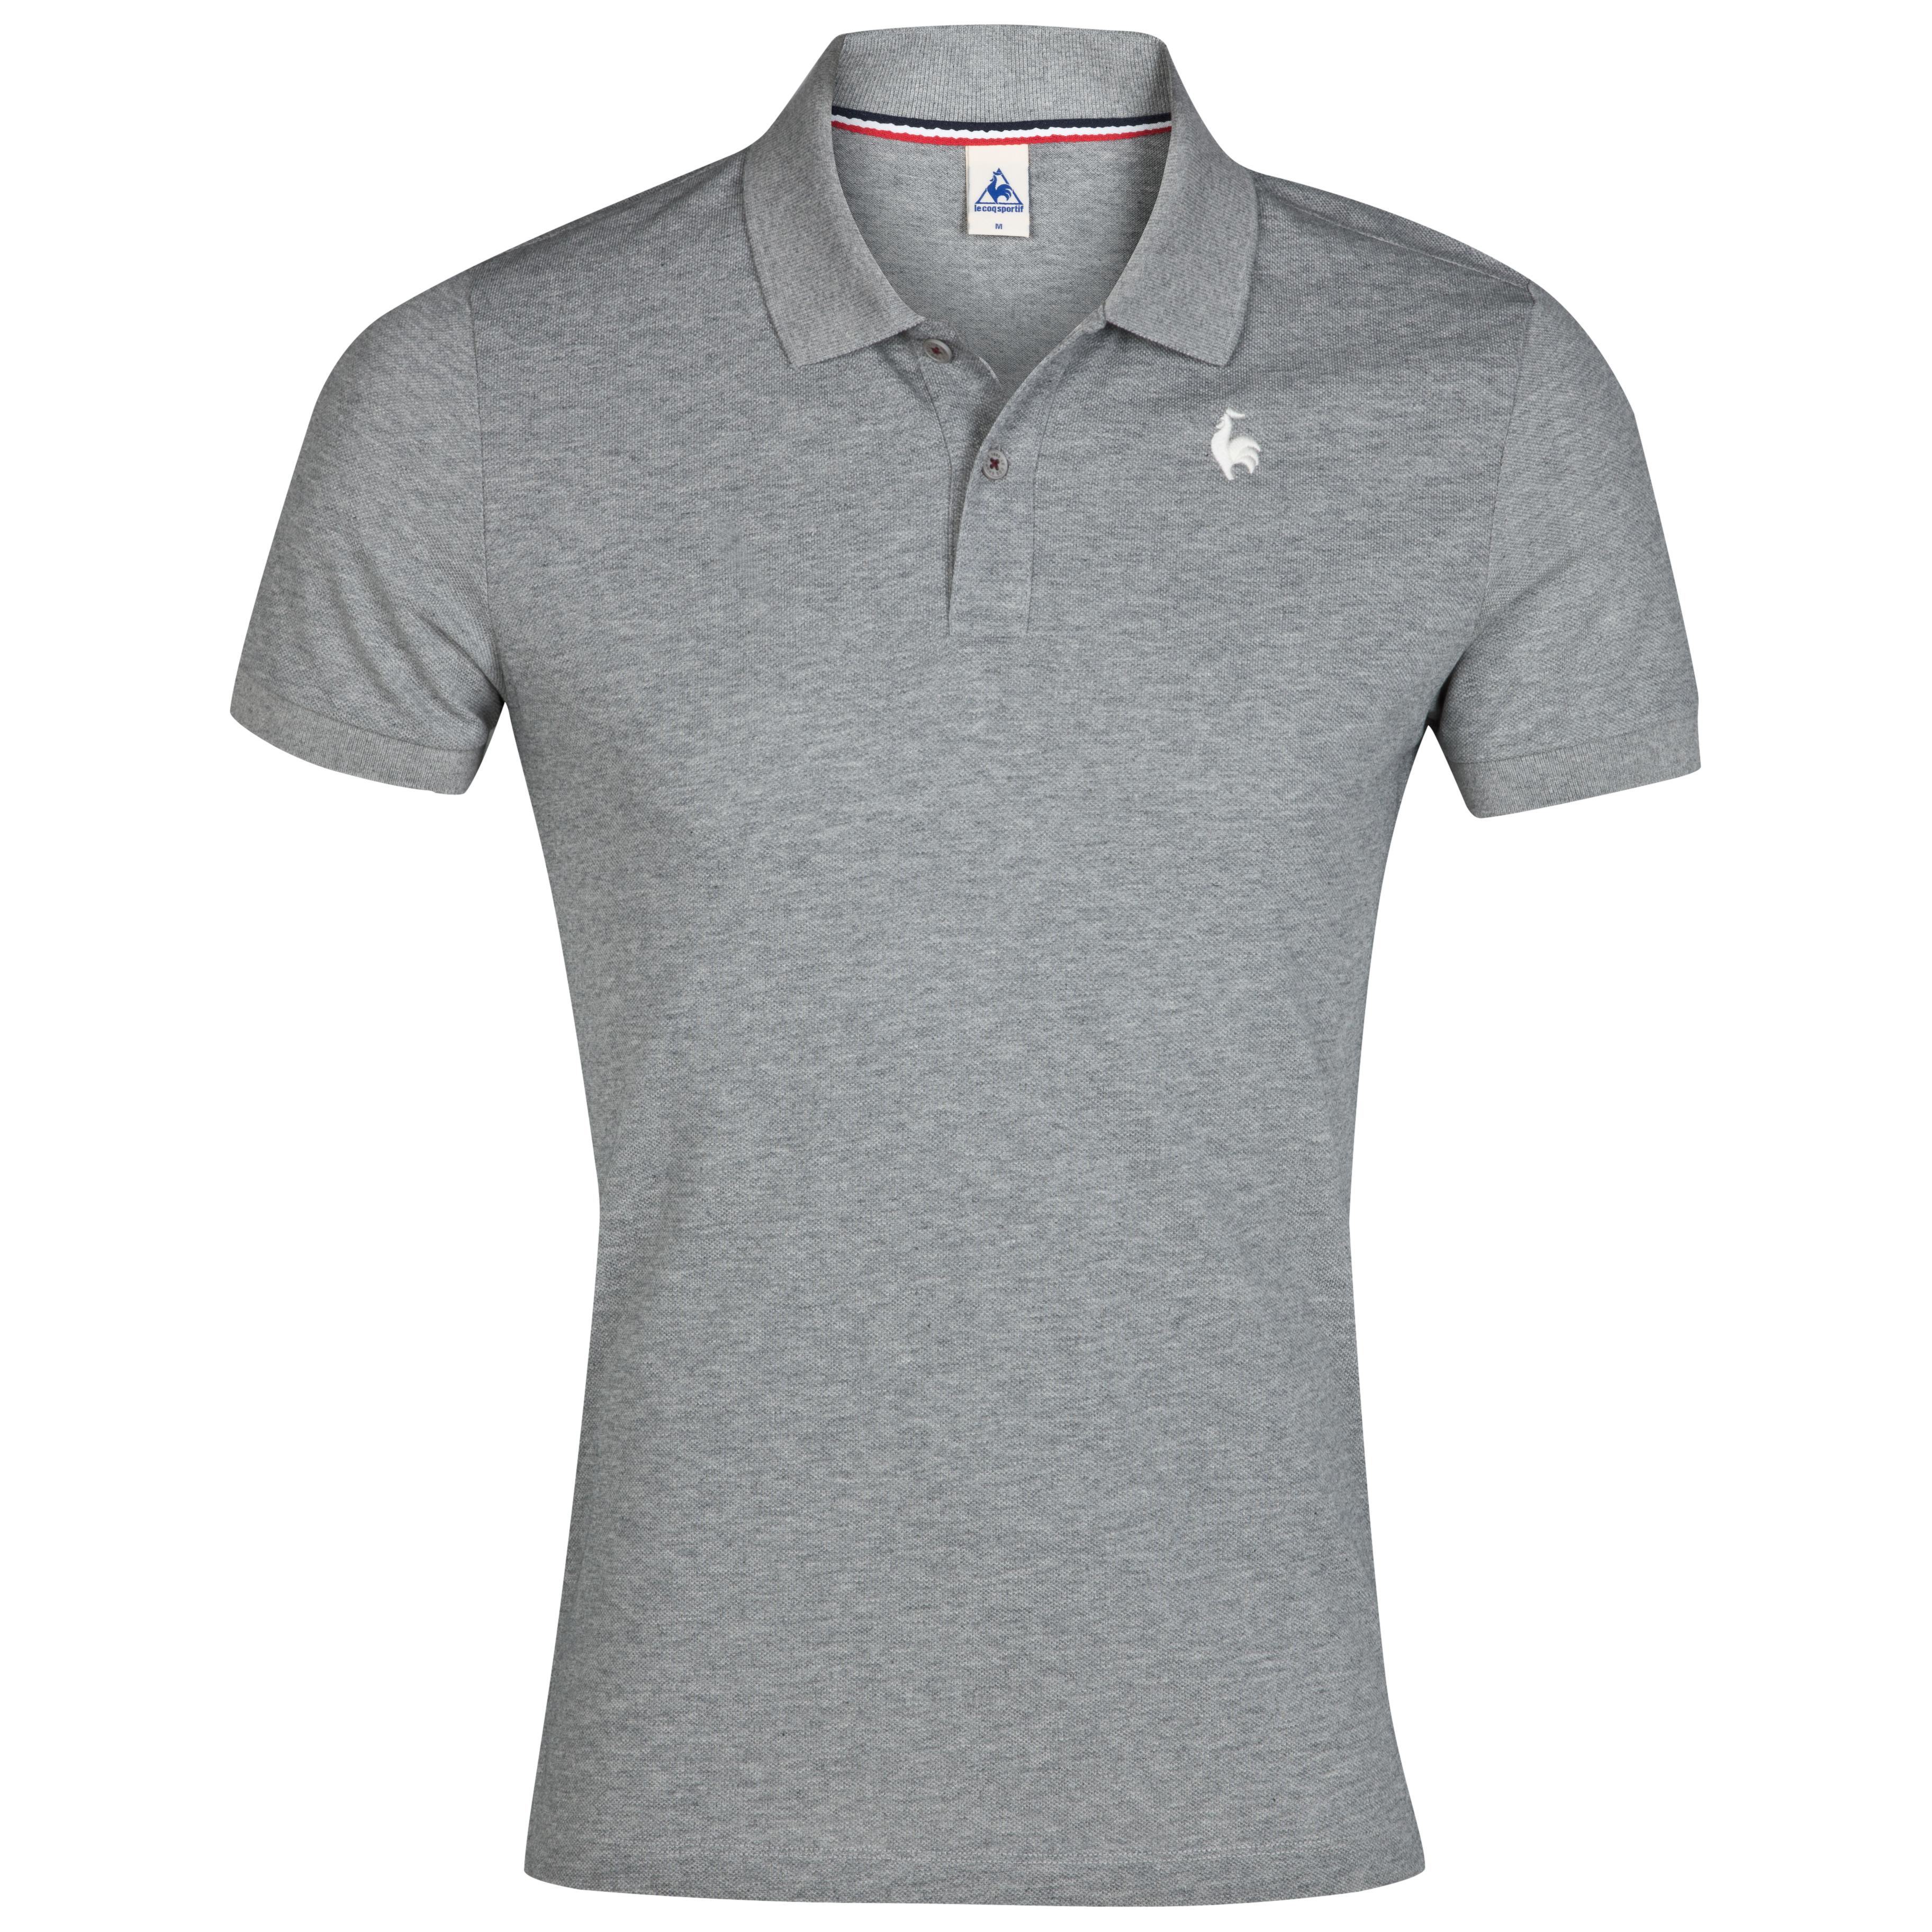 Le Coq Sportif Pique Polo - Light Heather Grey